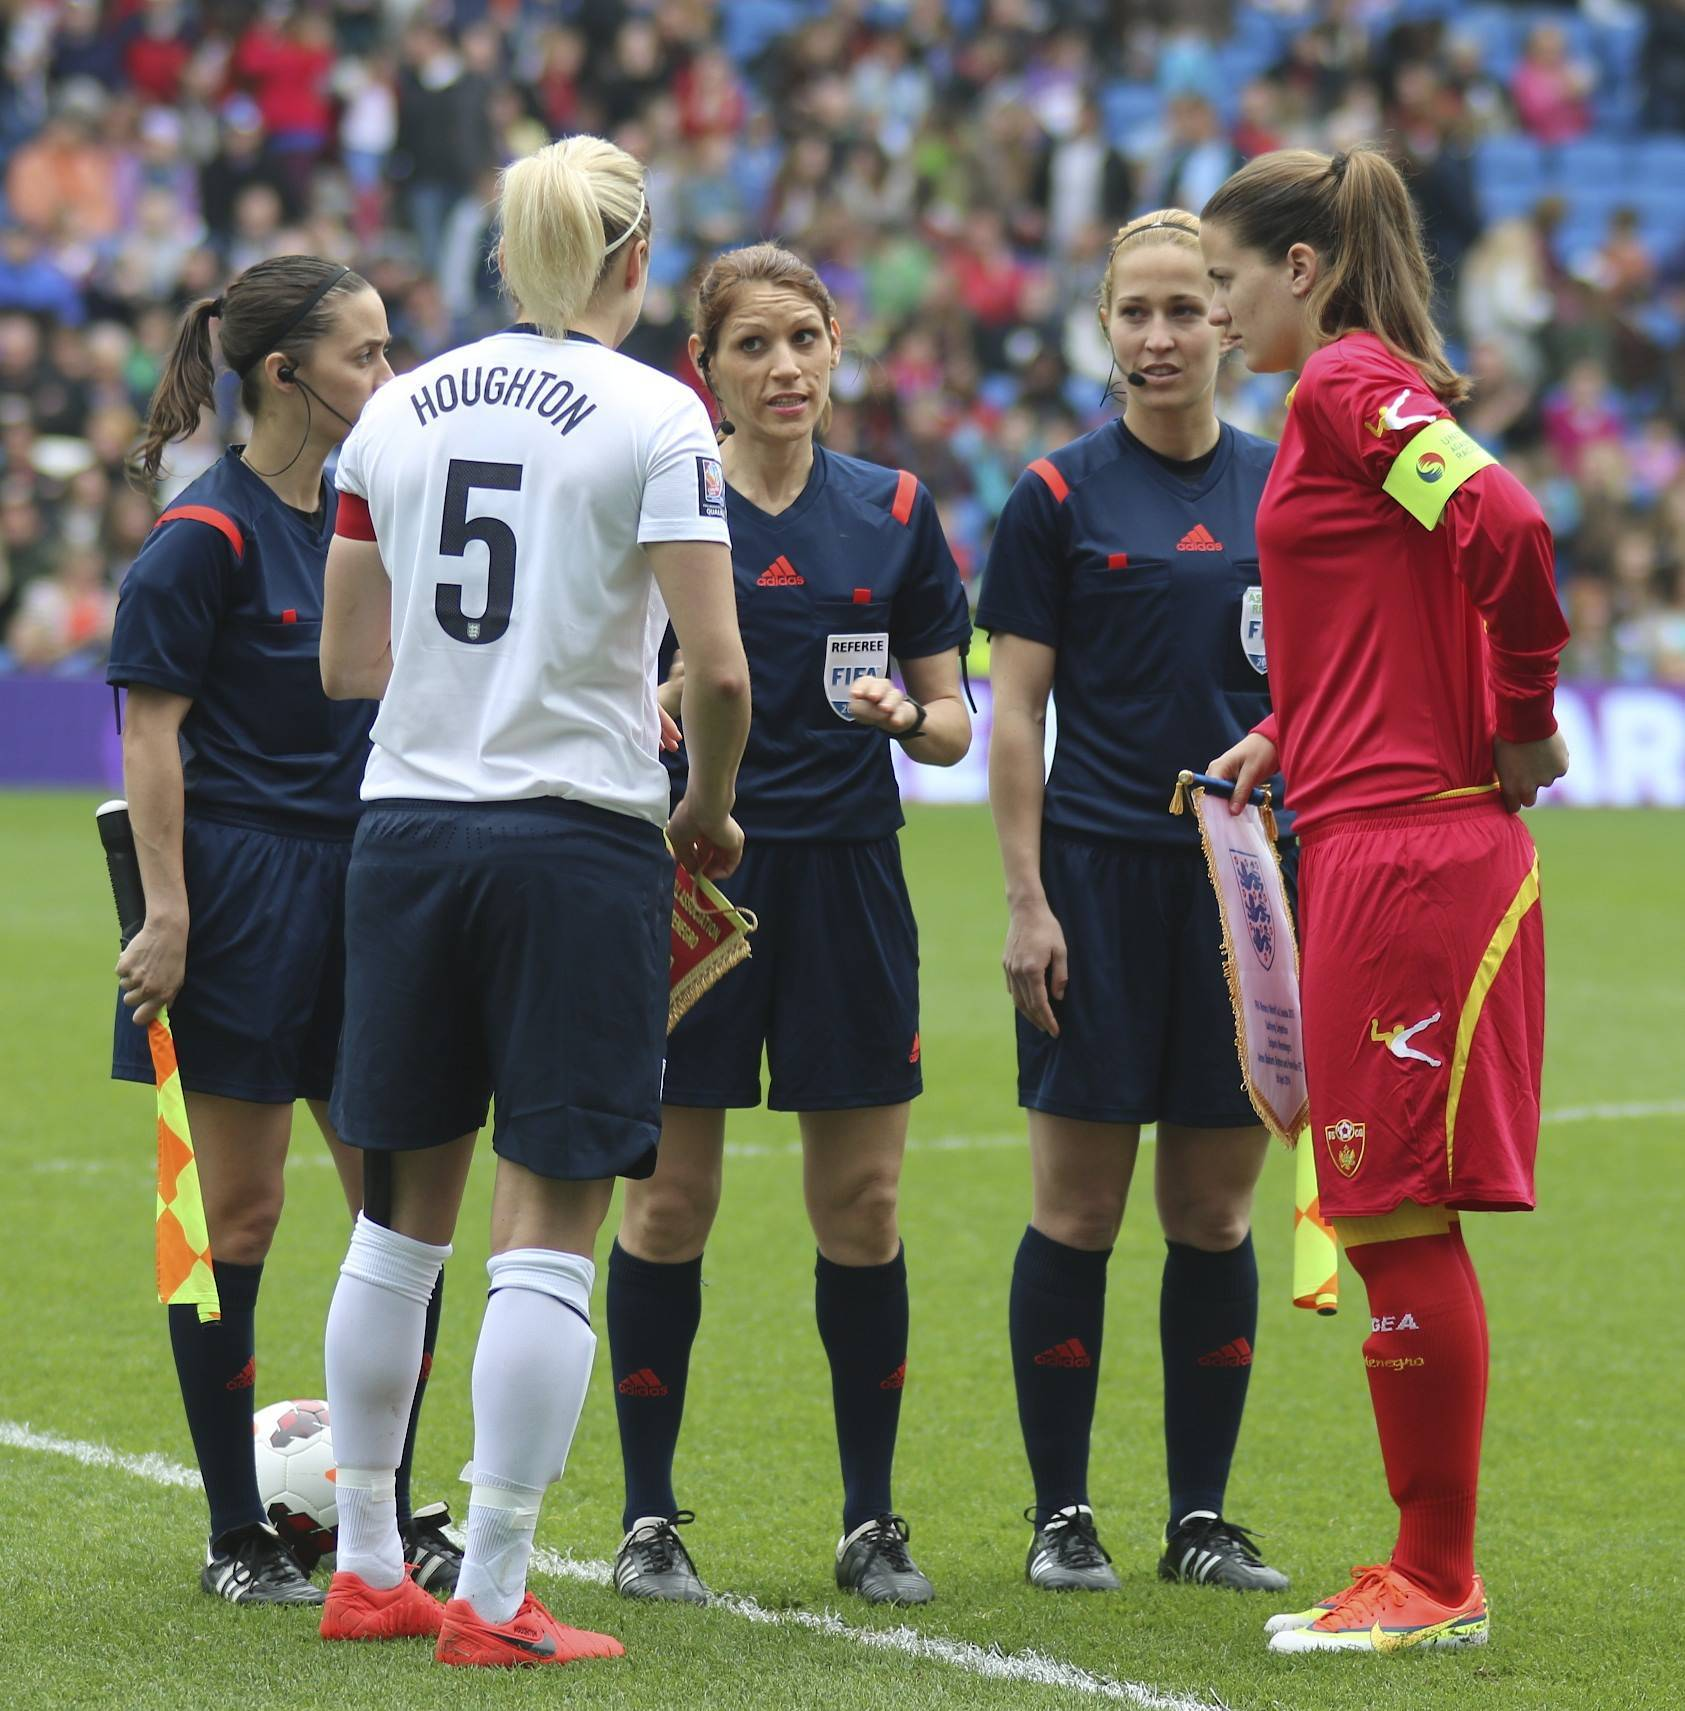 Choice_of_Ends_England_Ladies_v_Montenegro_5_4_2014_153